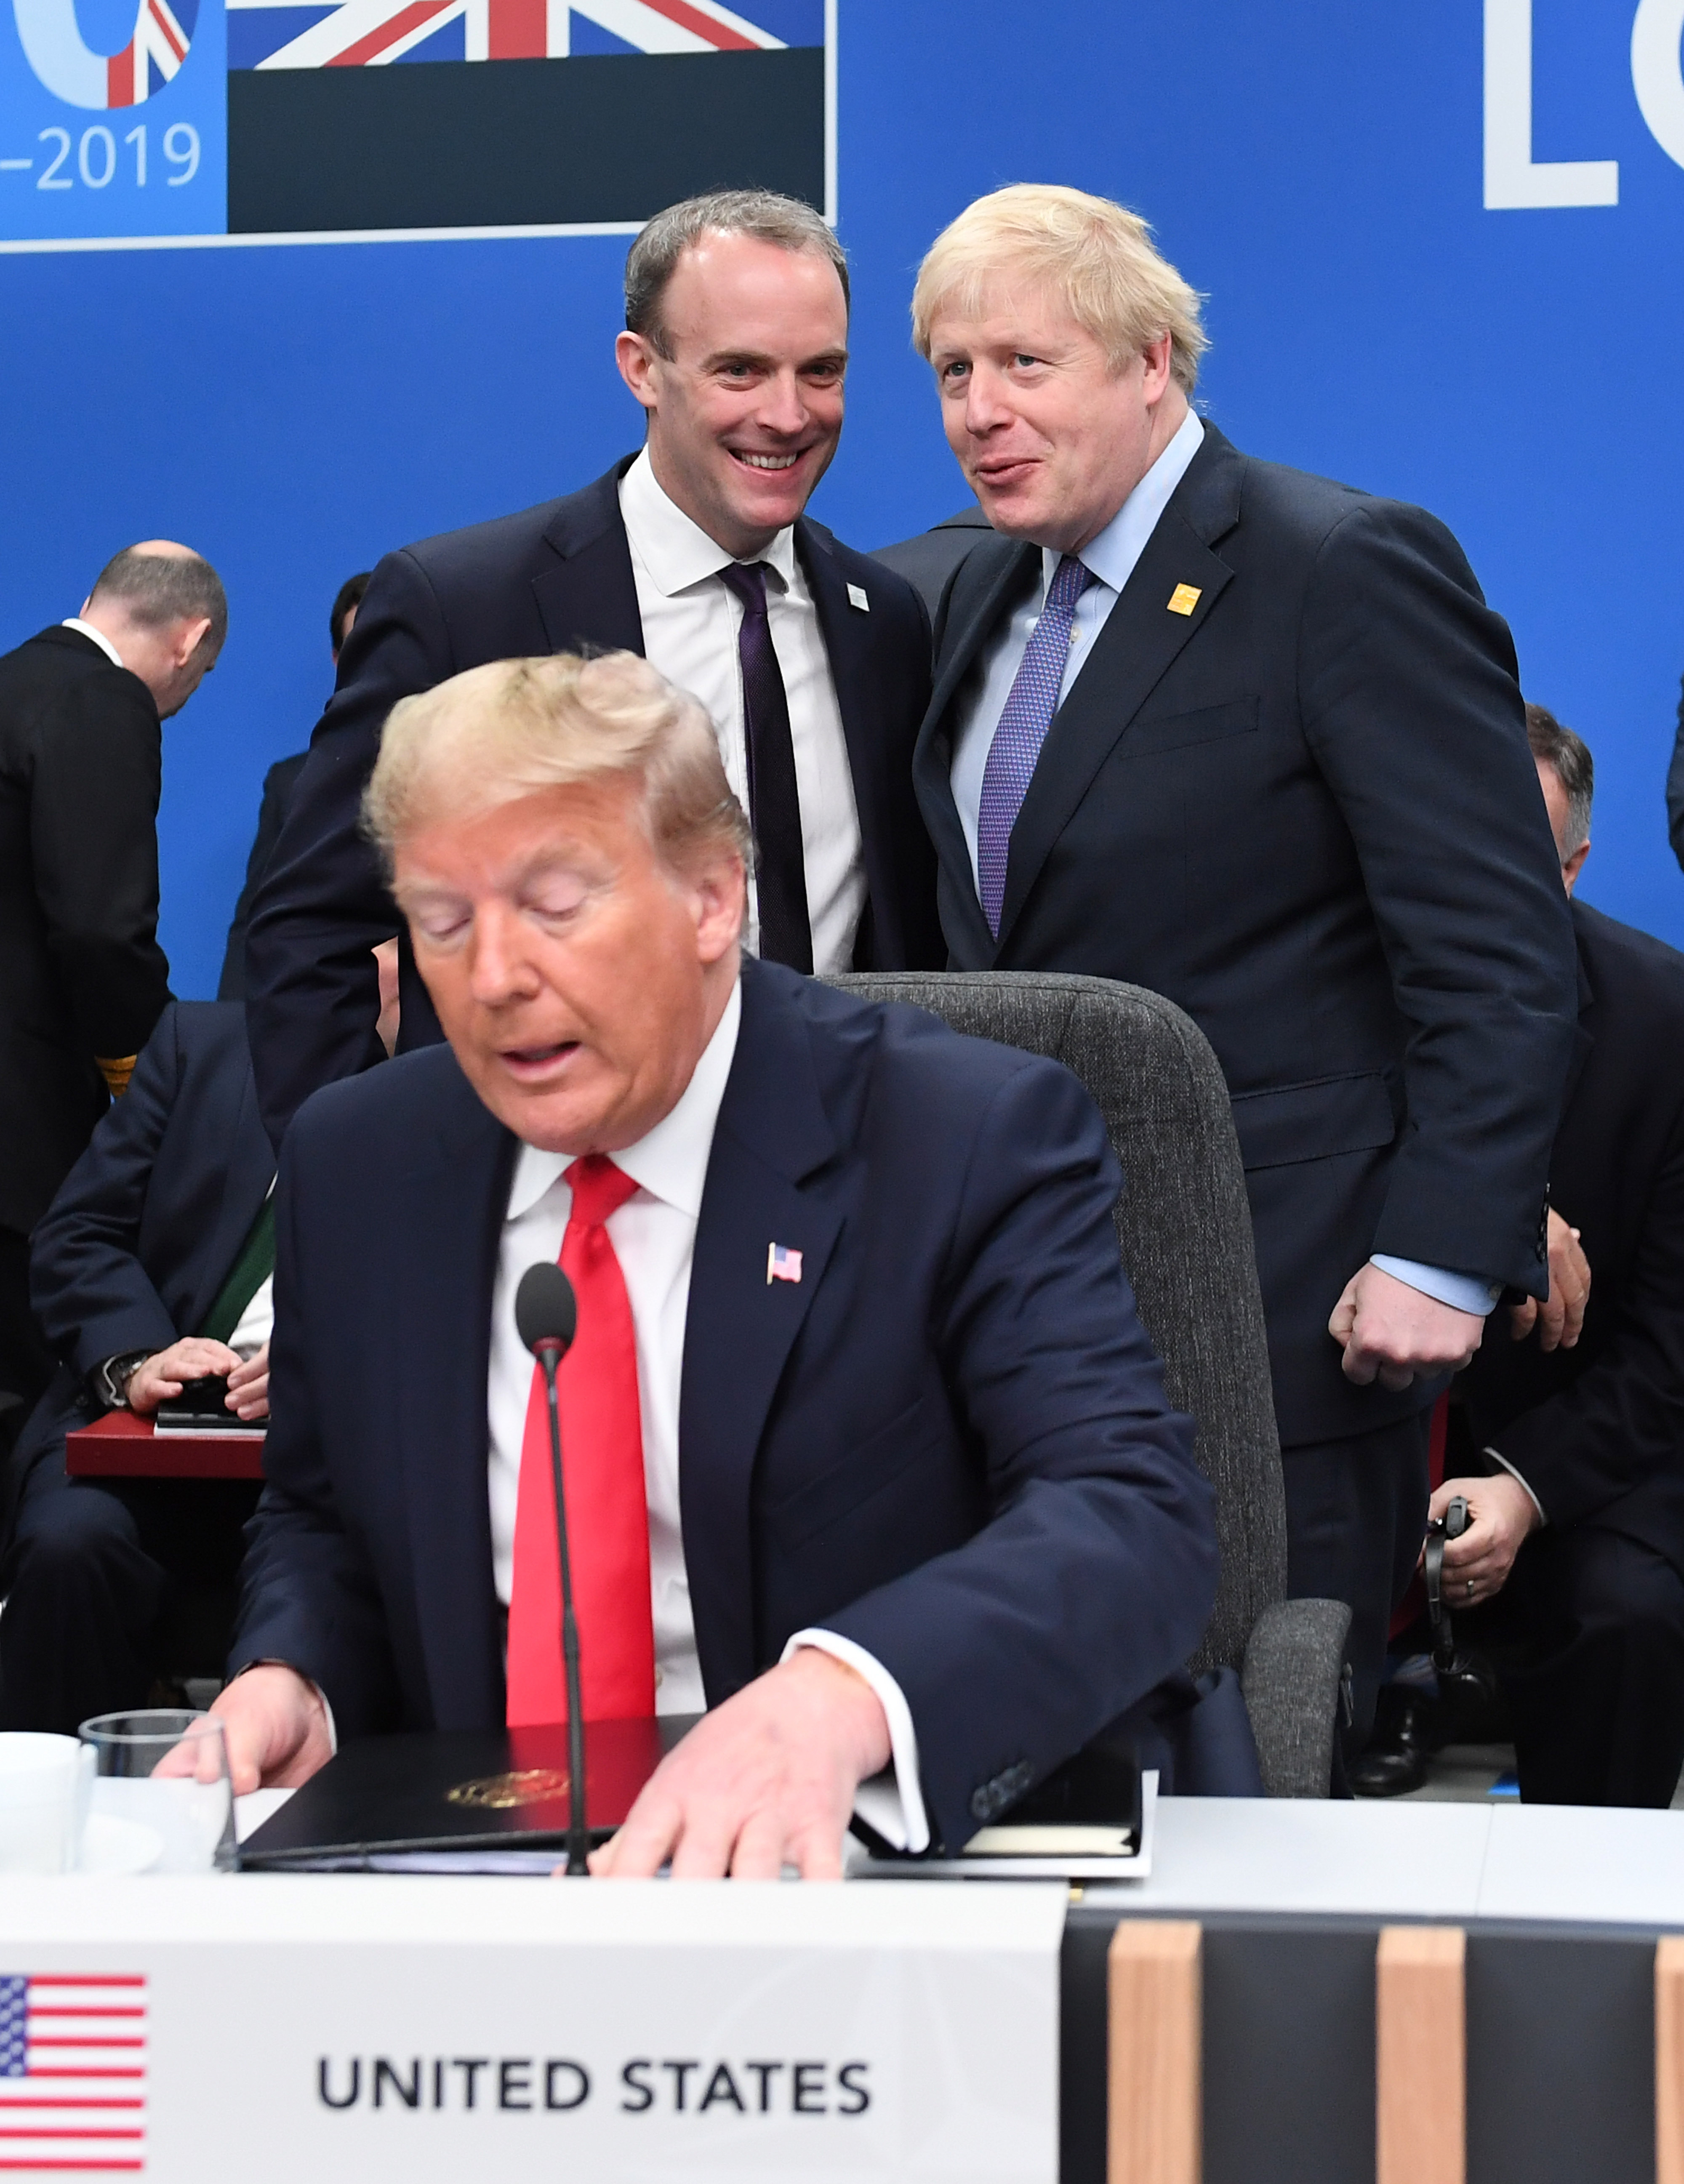 US President Donald Trump (front) with Foreign Secretary Dominic Raab (centre left) snd Prime Minister Boris Johnson(centre right) during the annual Nato heads of government summit at The Grove hotel in Watford, Hertfordshire.